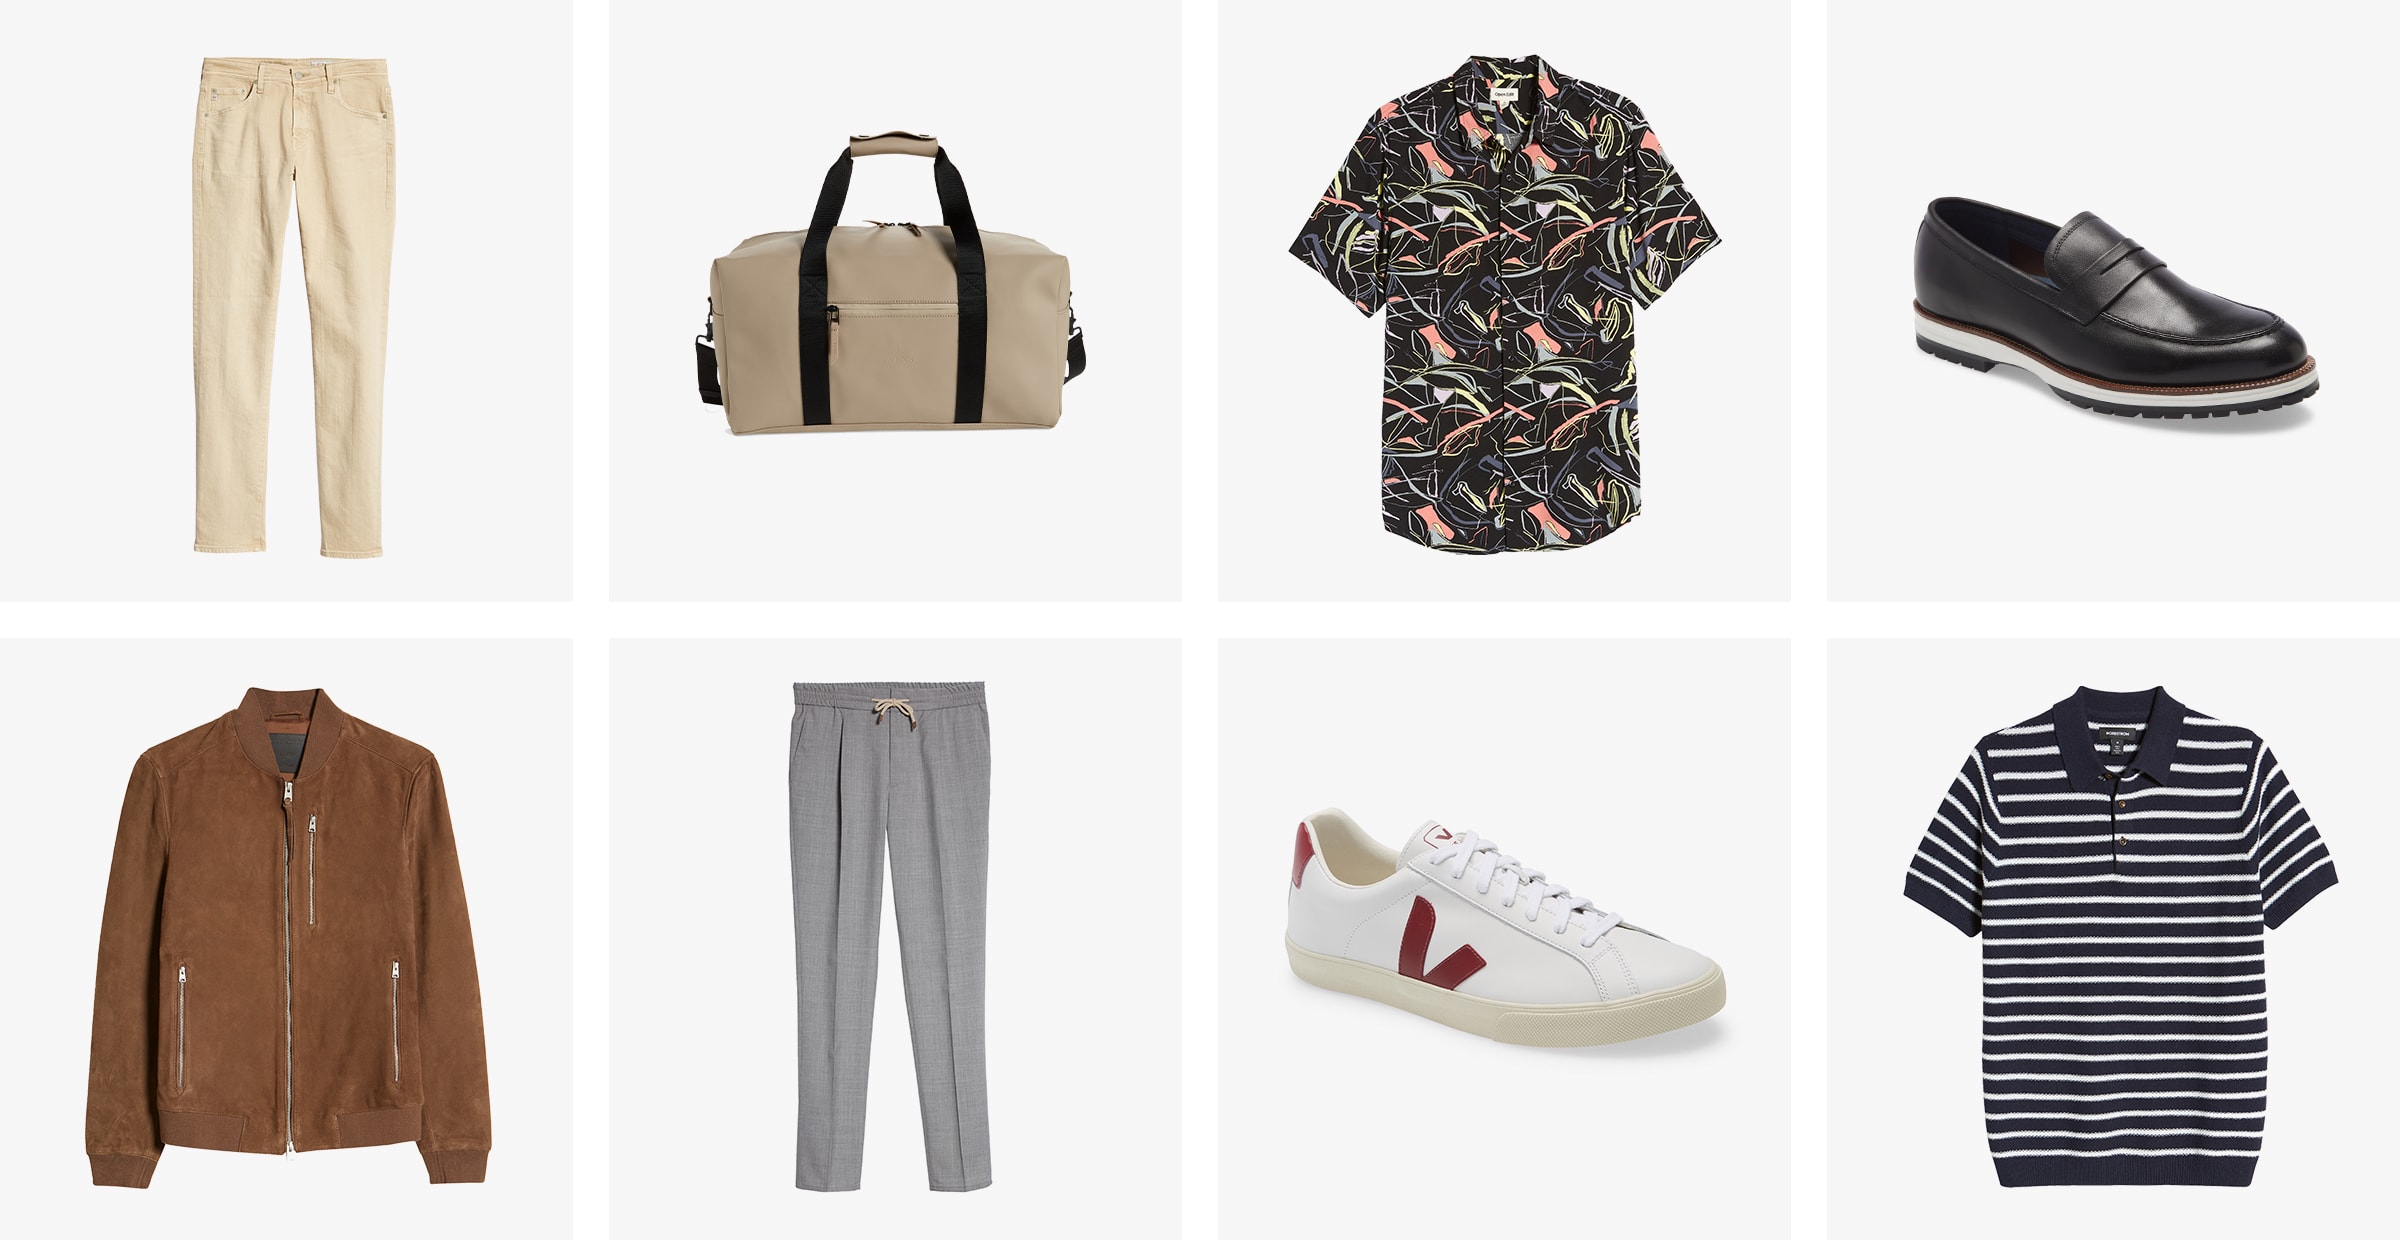 Men's chinos, sunglasses, a button-up, black loafers, a brown bomber jacket, grey trousers, white sneakers and a T-shirt.